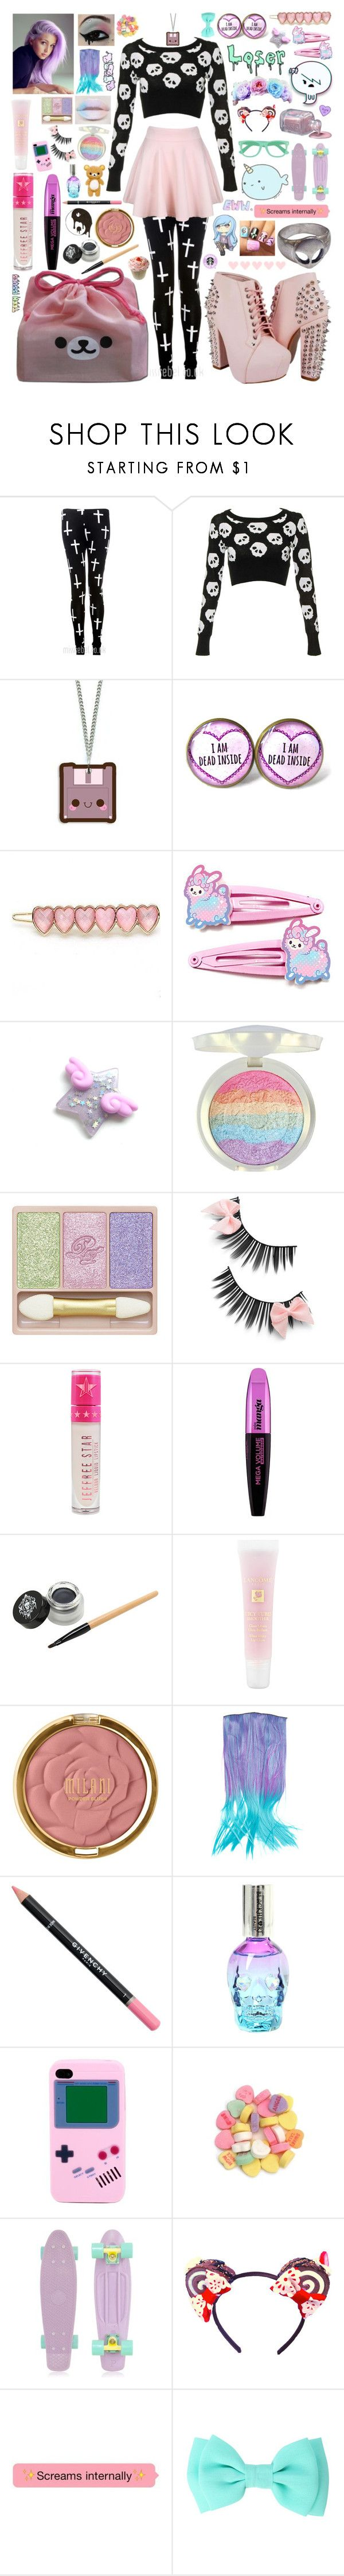 """""""How To Be A Pastel Goth 2"""" by aspiretoinspire22 ❤ liked on Polyvore featuring Nico, Paul & Joe Beaute, Jeffree Star, L'Oréal Paris, Lancôme, Milani, Givenchy, Retrò and Amie"""